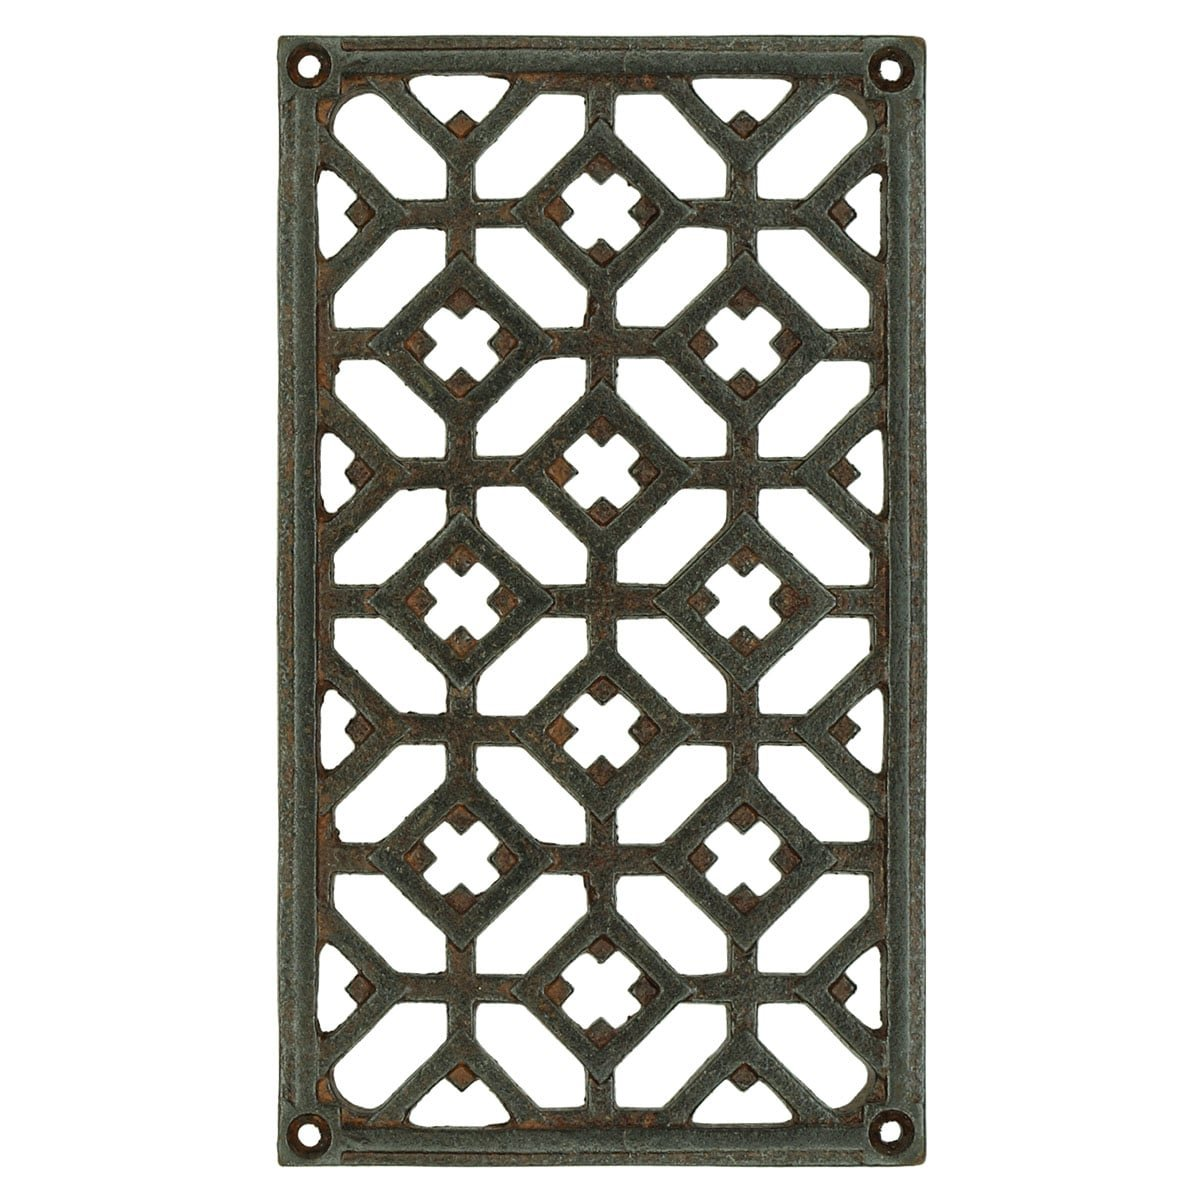 Hardware Grilles & Grates Grille decorative doors square Coswig - 180 mm